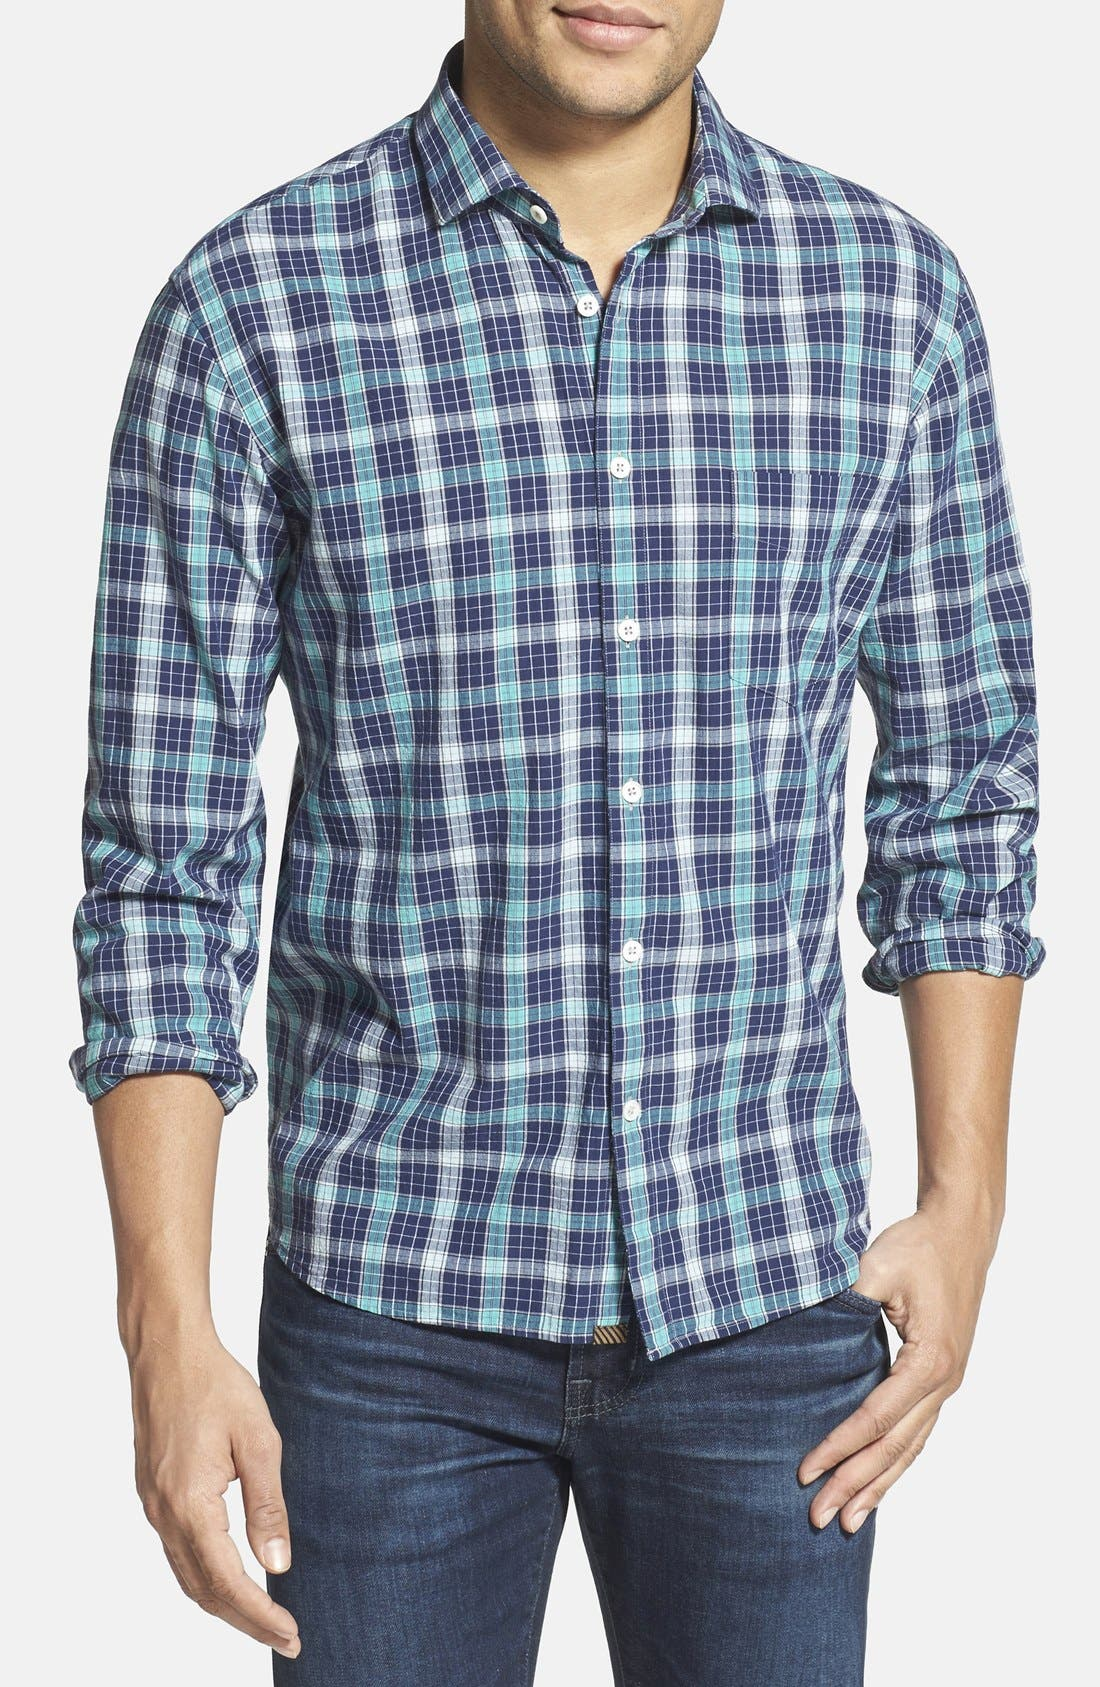 Alternate Image 1 Selected - Billy Reid 'John T' Standard Fit Plaid Sport Shirt